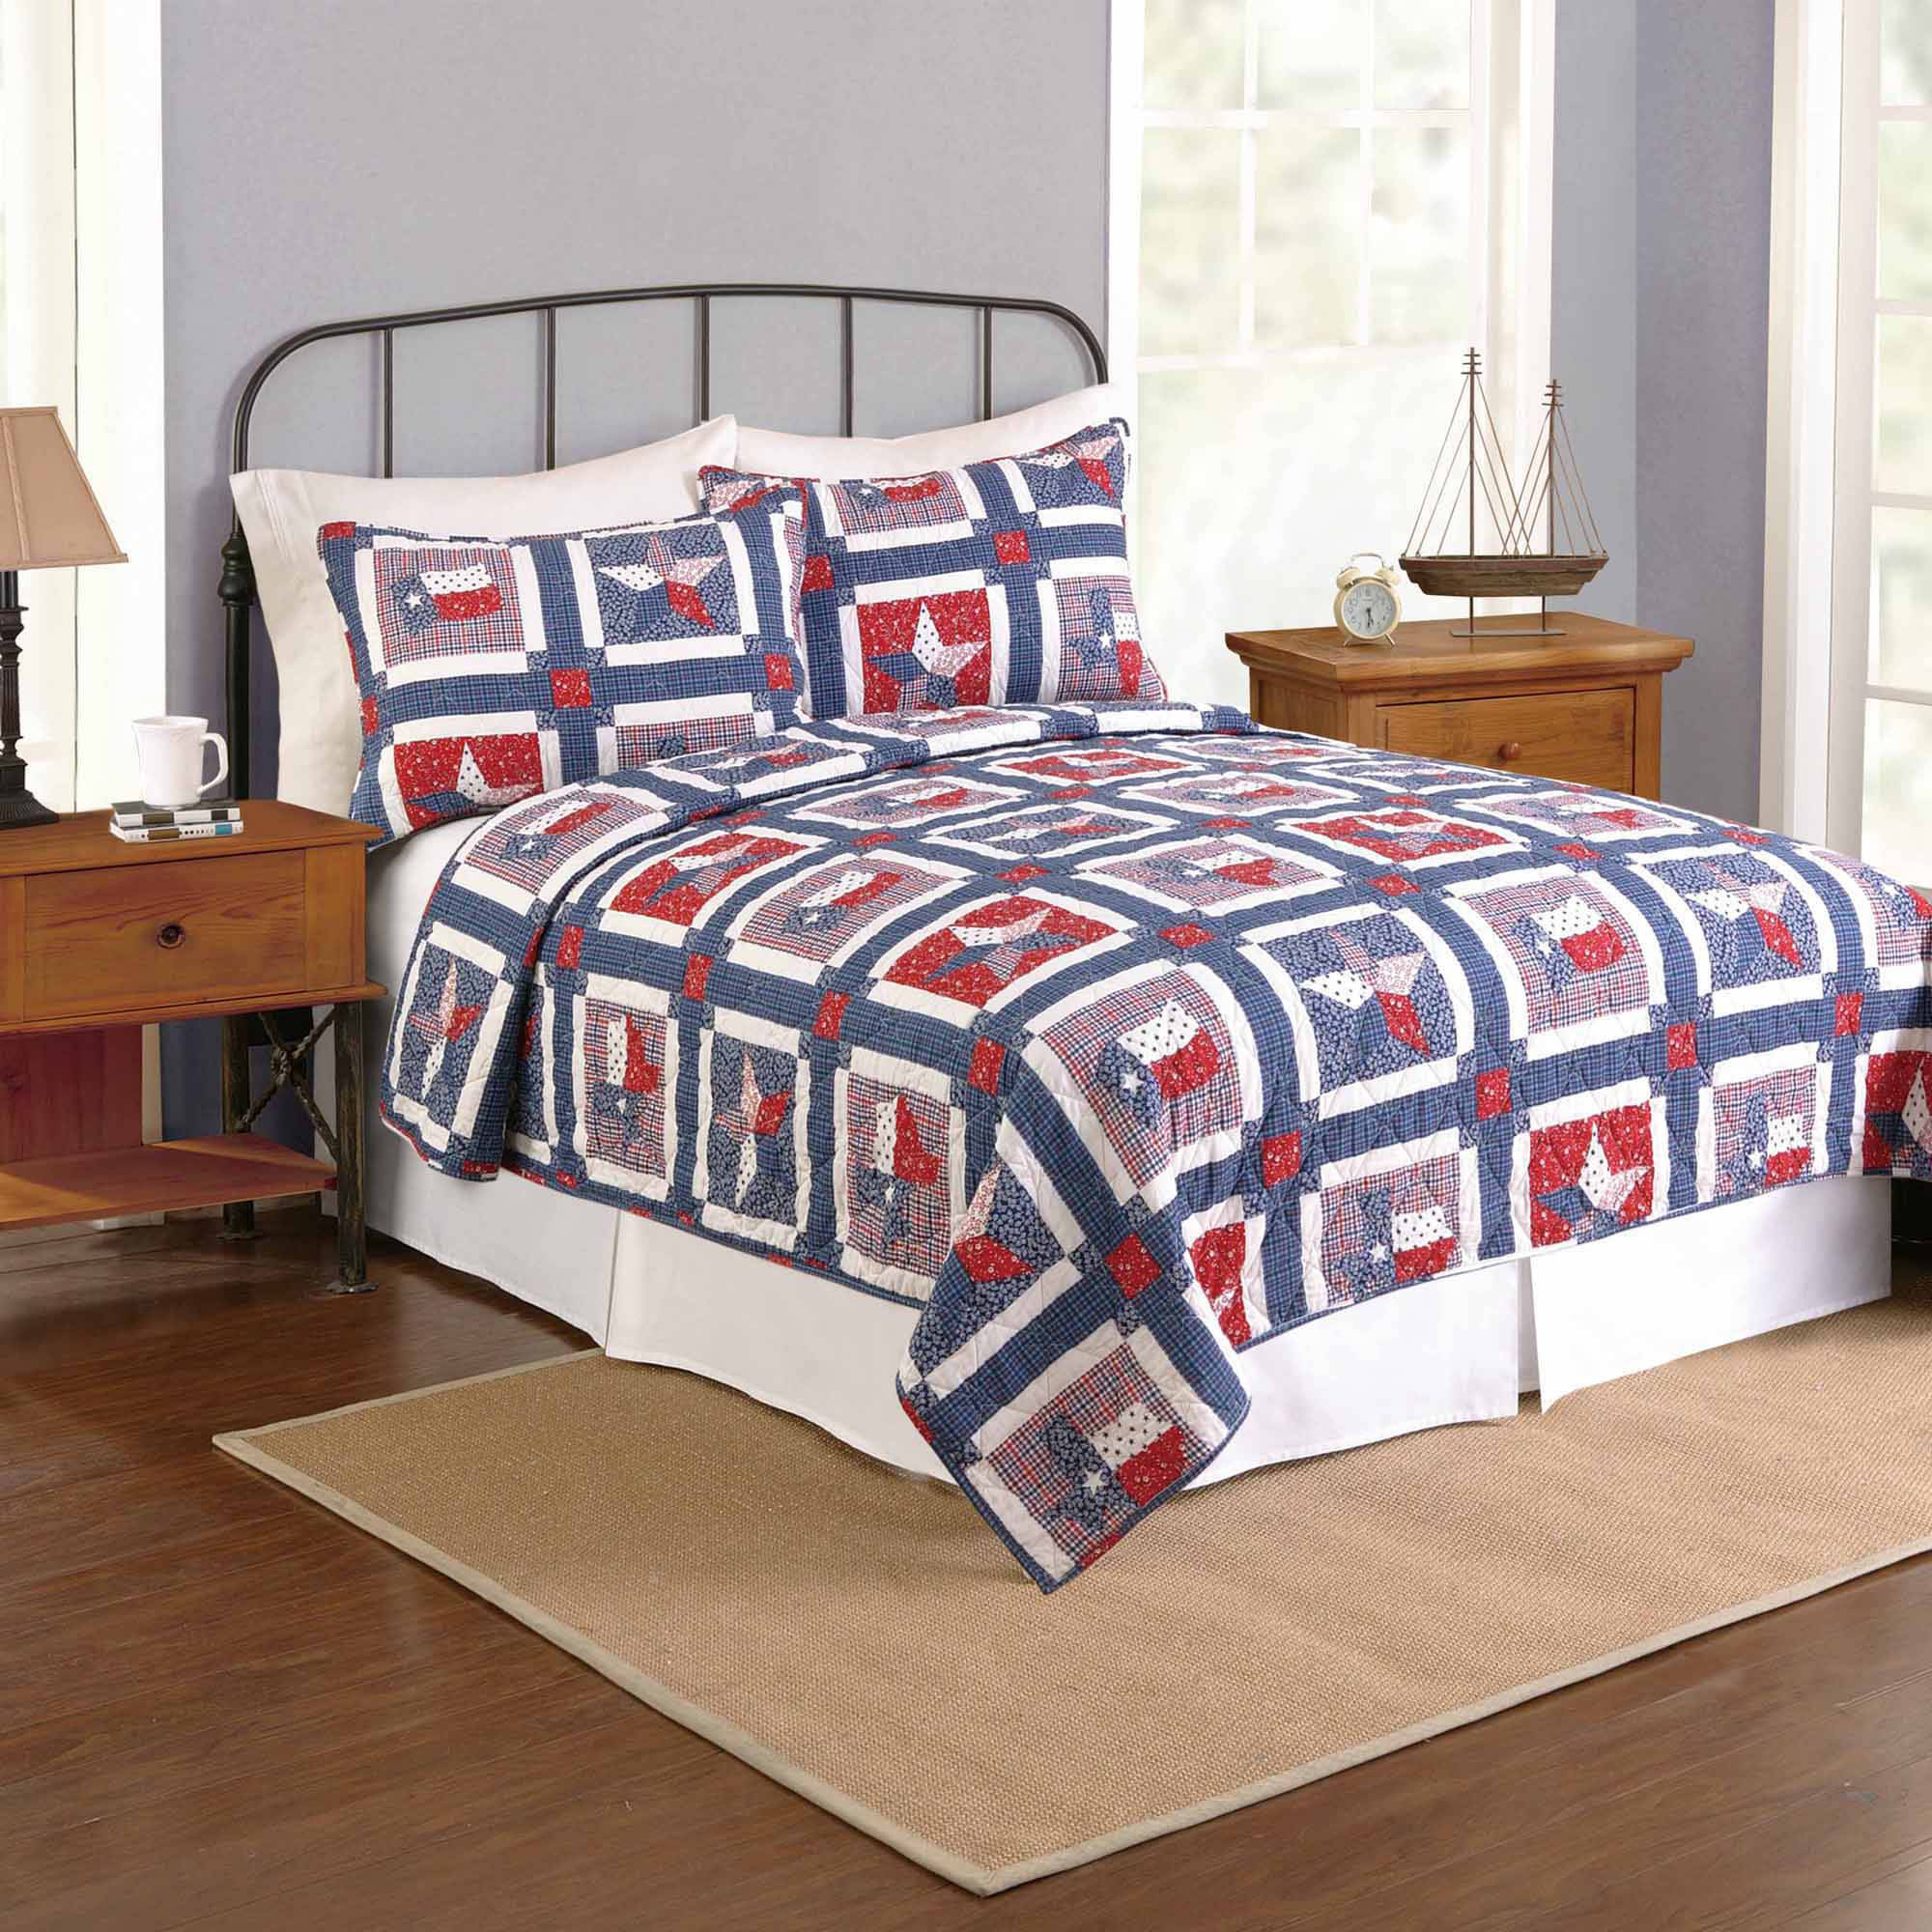 Better Homes and Gardens Star of Texas Twin Quilt by KRISS